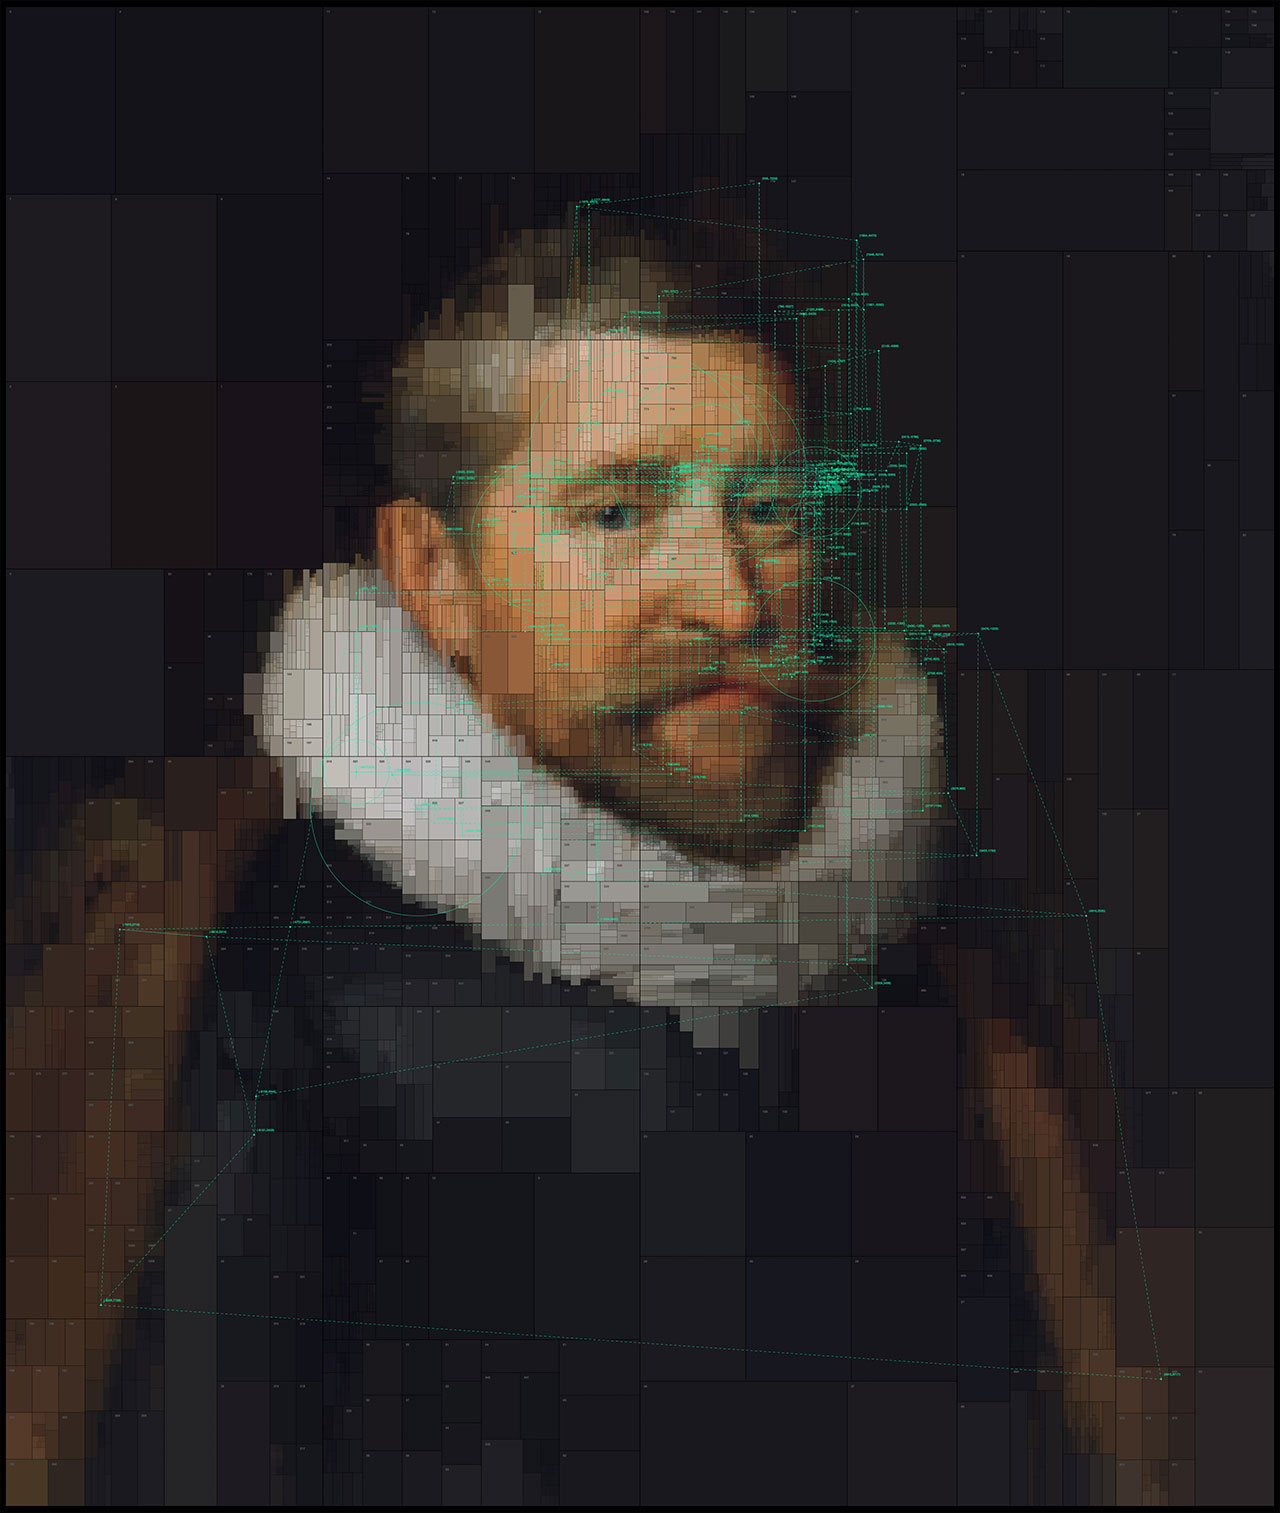 Sir Henry Wotton, from Portraits series by Dimitris Ladopoulos (Original painting by Michiel Janszoon van Mierevelt, 1620).